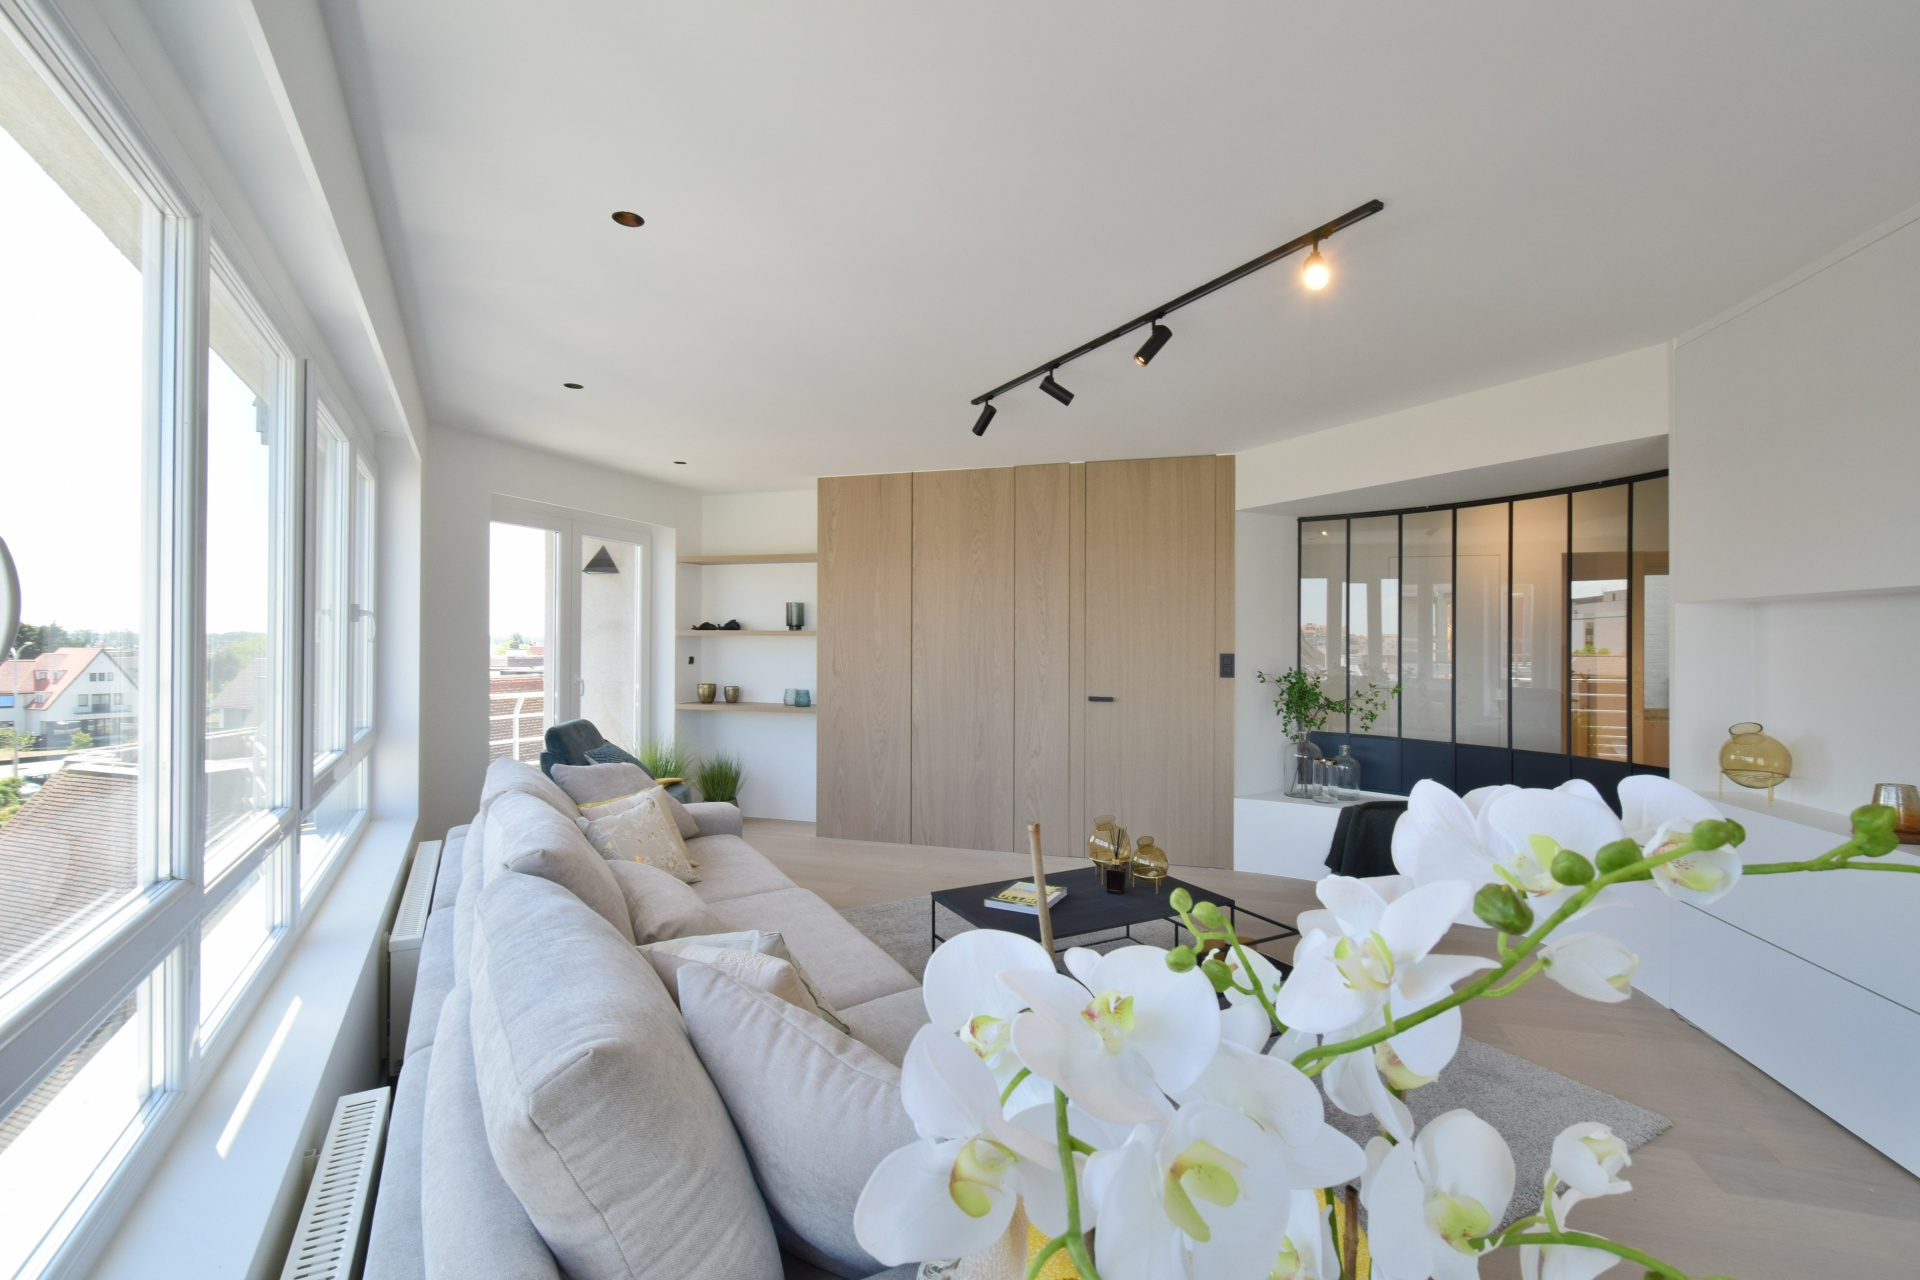 esterelle, knokke, immo, for sale, housestyling, propertystyling, casa nova